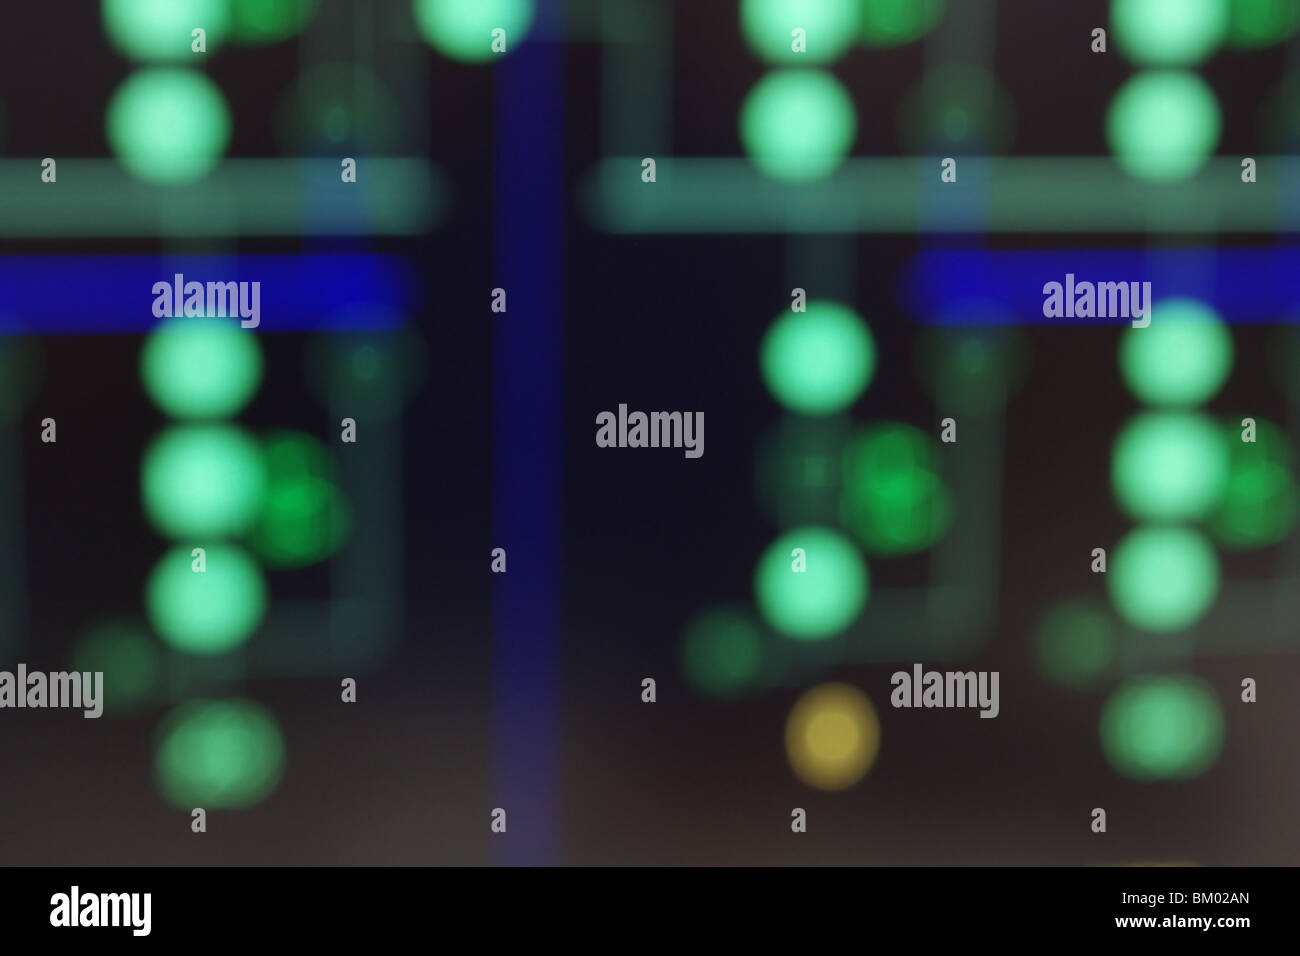 Concept image - blurred view of power substation schematics on computer SCADA display. - Stock Image